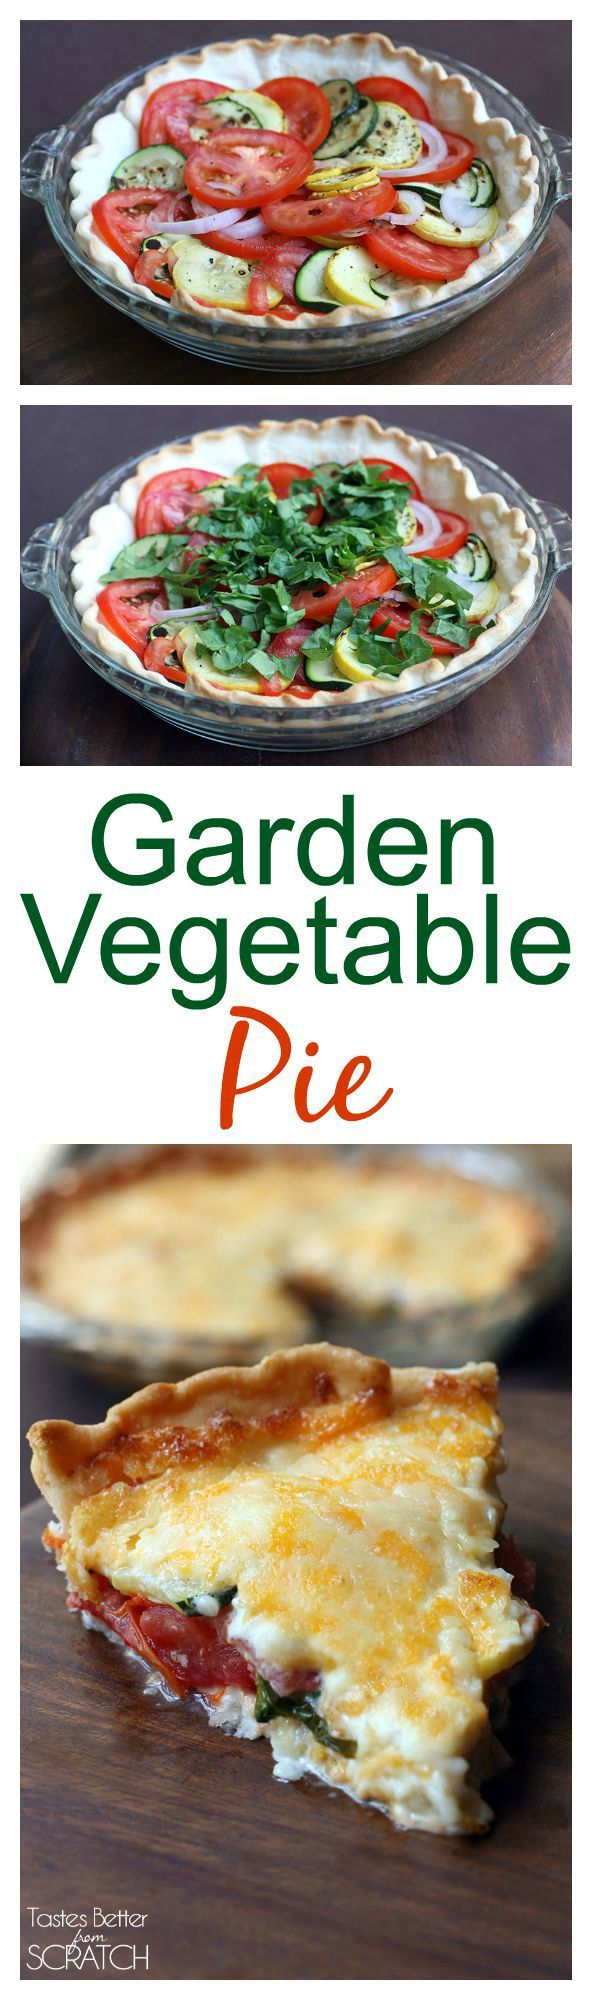 how to make vegetable pie in microwave